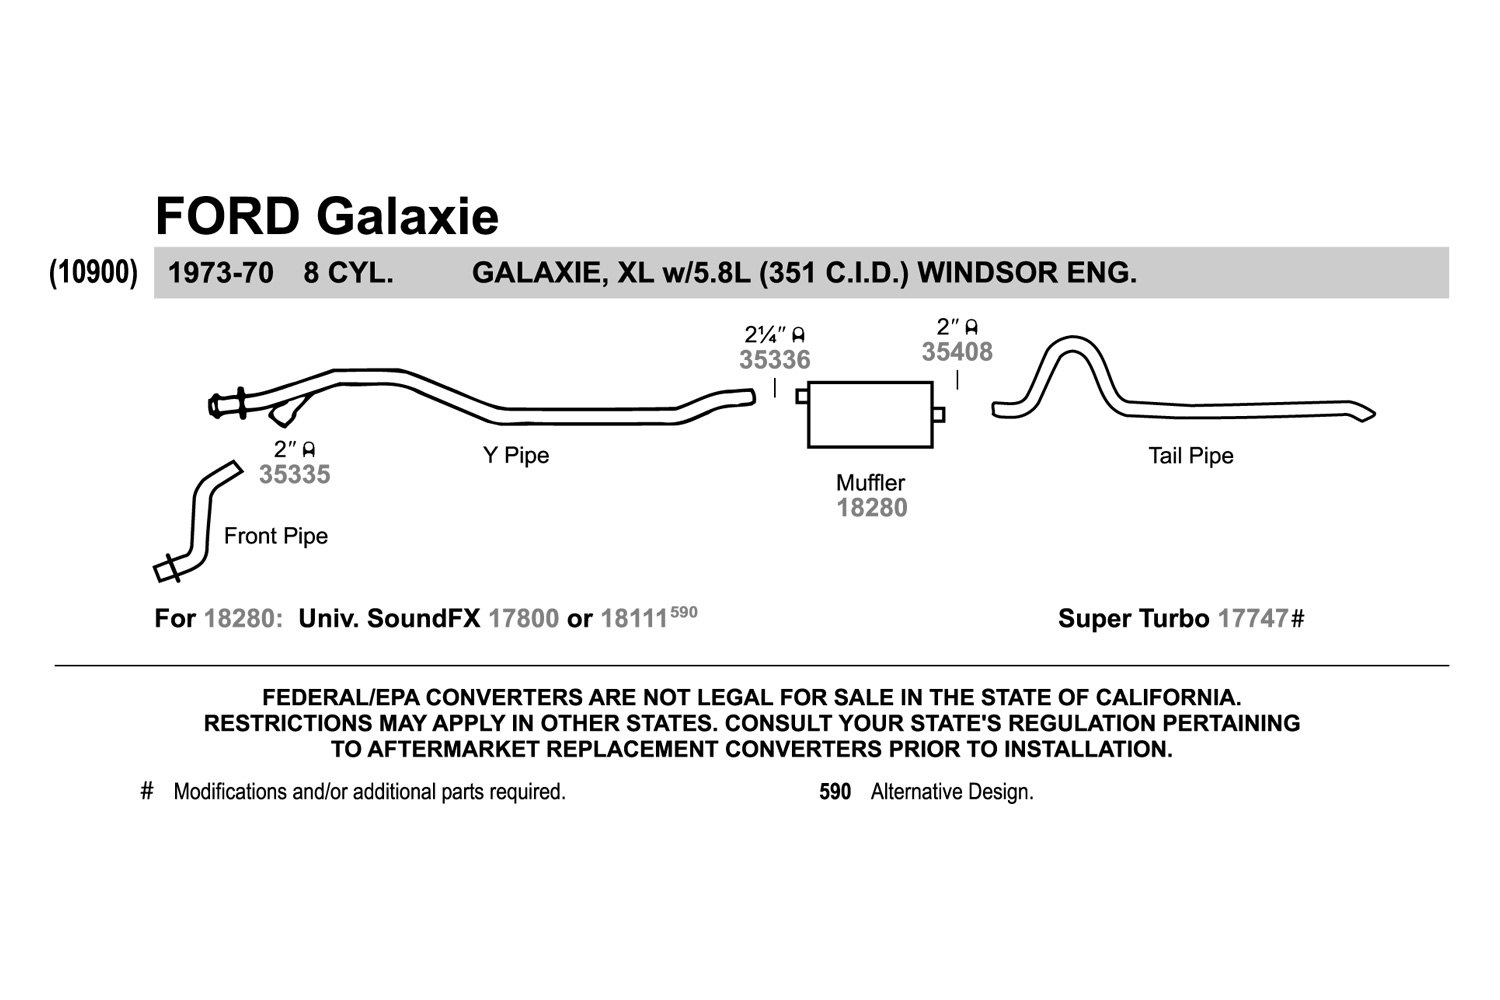 Y Pipe Exhaust Diagram Electrical Wiring Diagrams 03 G35 Sedan Bumpers 03  G35 Sedan Exhaust Diagram